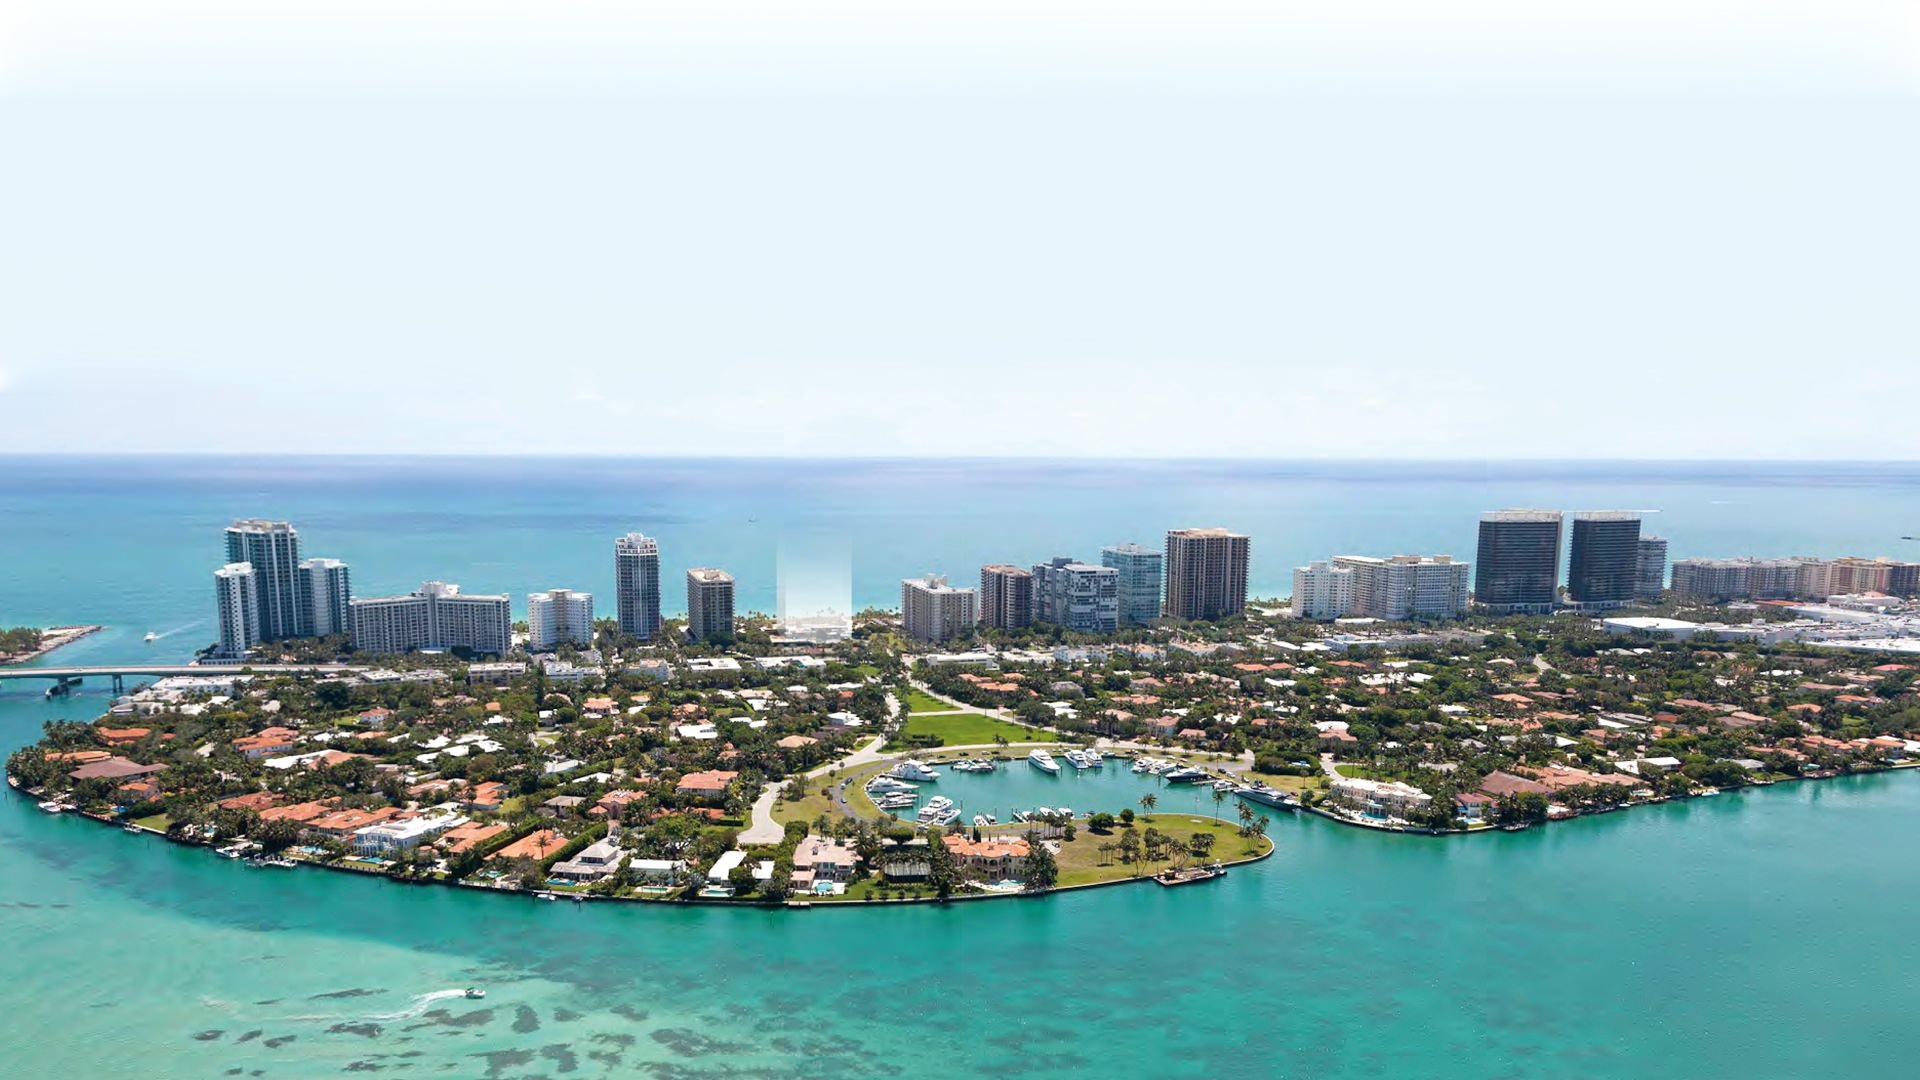 oceana-bal-harbour-land-area.jpg